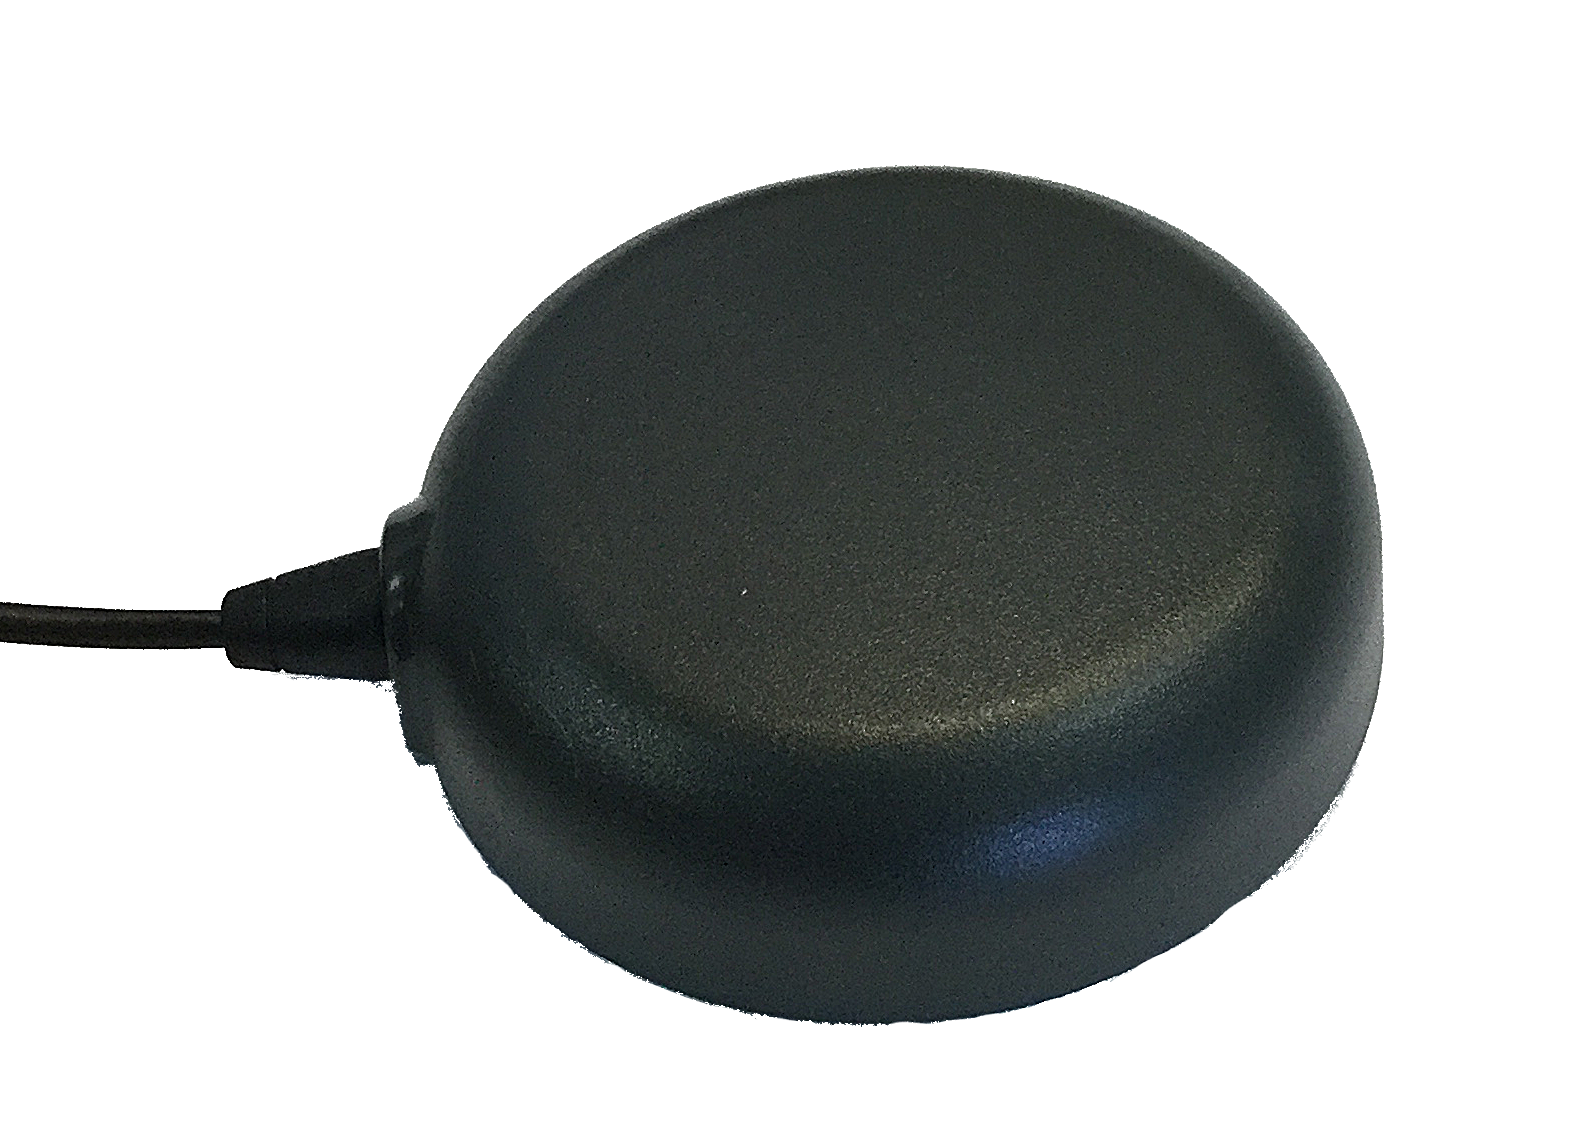 Tallysman's TW7875 GNSS Antenna Designed for Precision Positioning